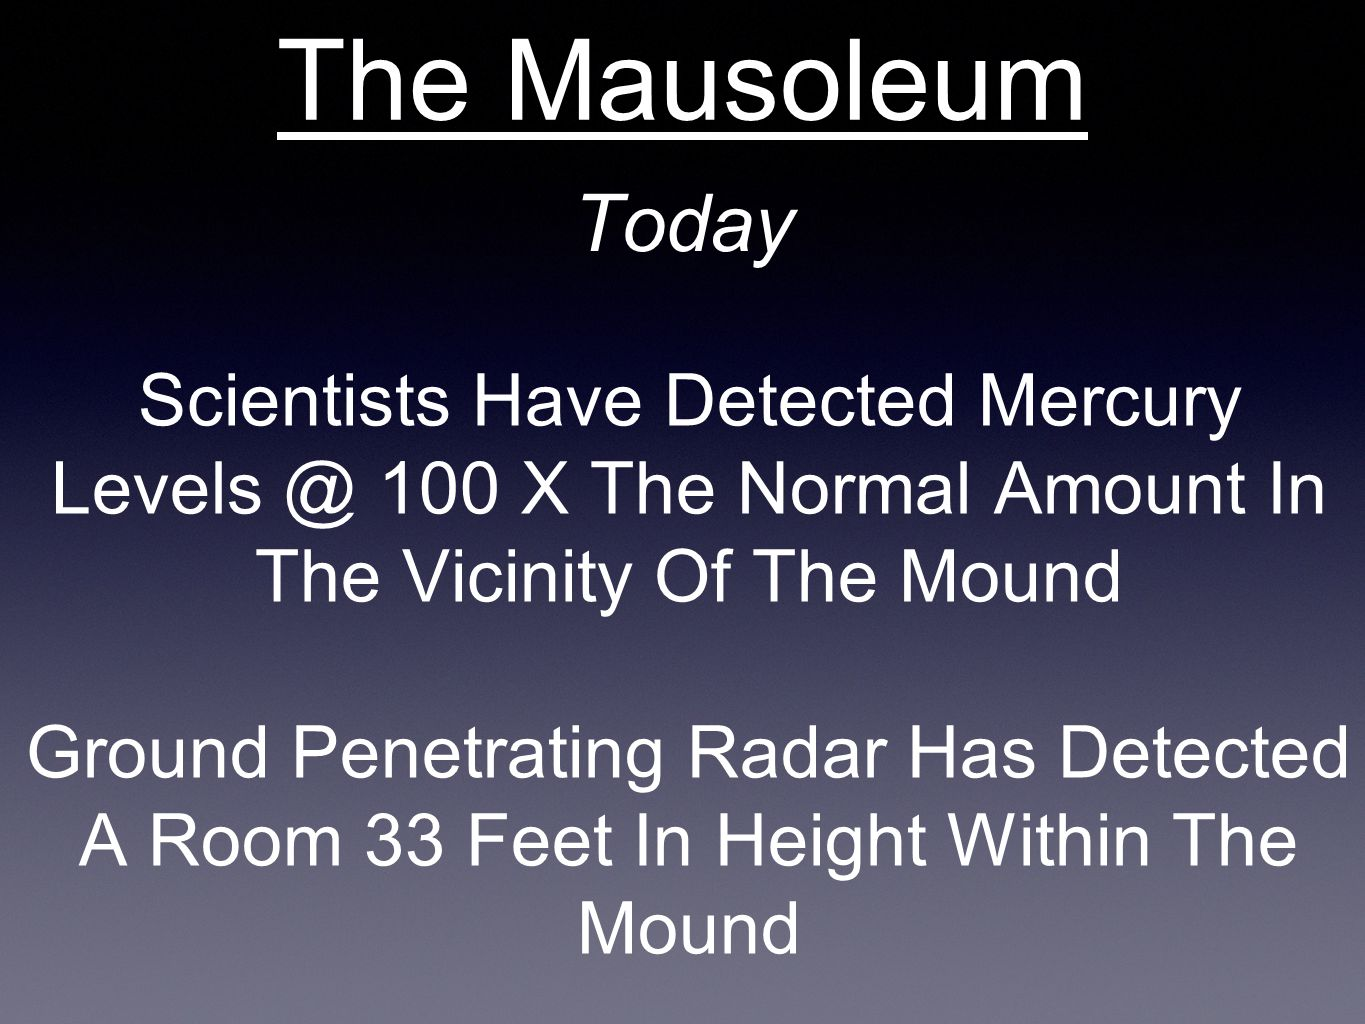 Today The Mausoleum Scientists Have Detected Mercury Levels @ 100 X The Normal Amount In The Vicinity Of The Mound Ground Penetrating Radar Has Detected A Room 33 Feet In Height Within The Mound